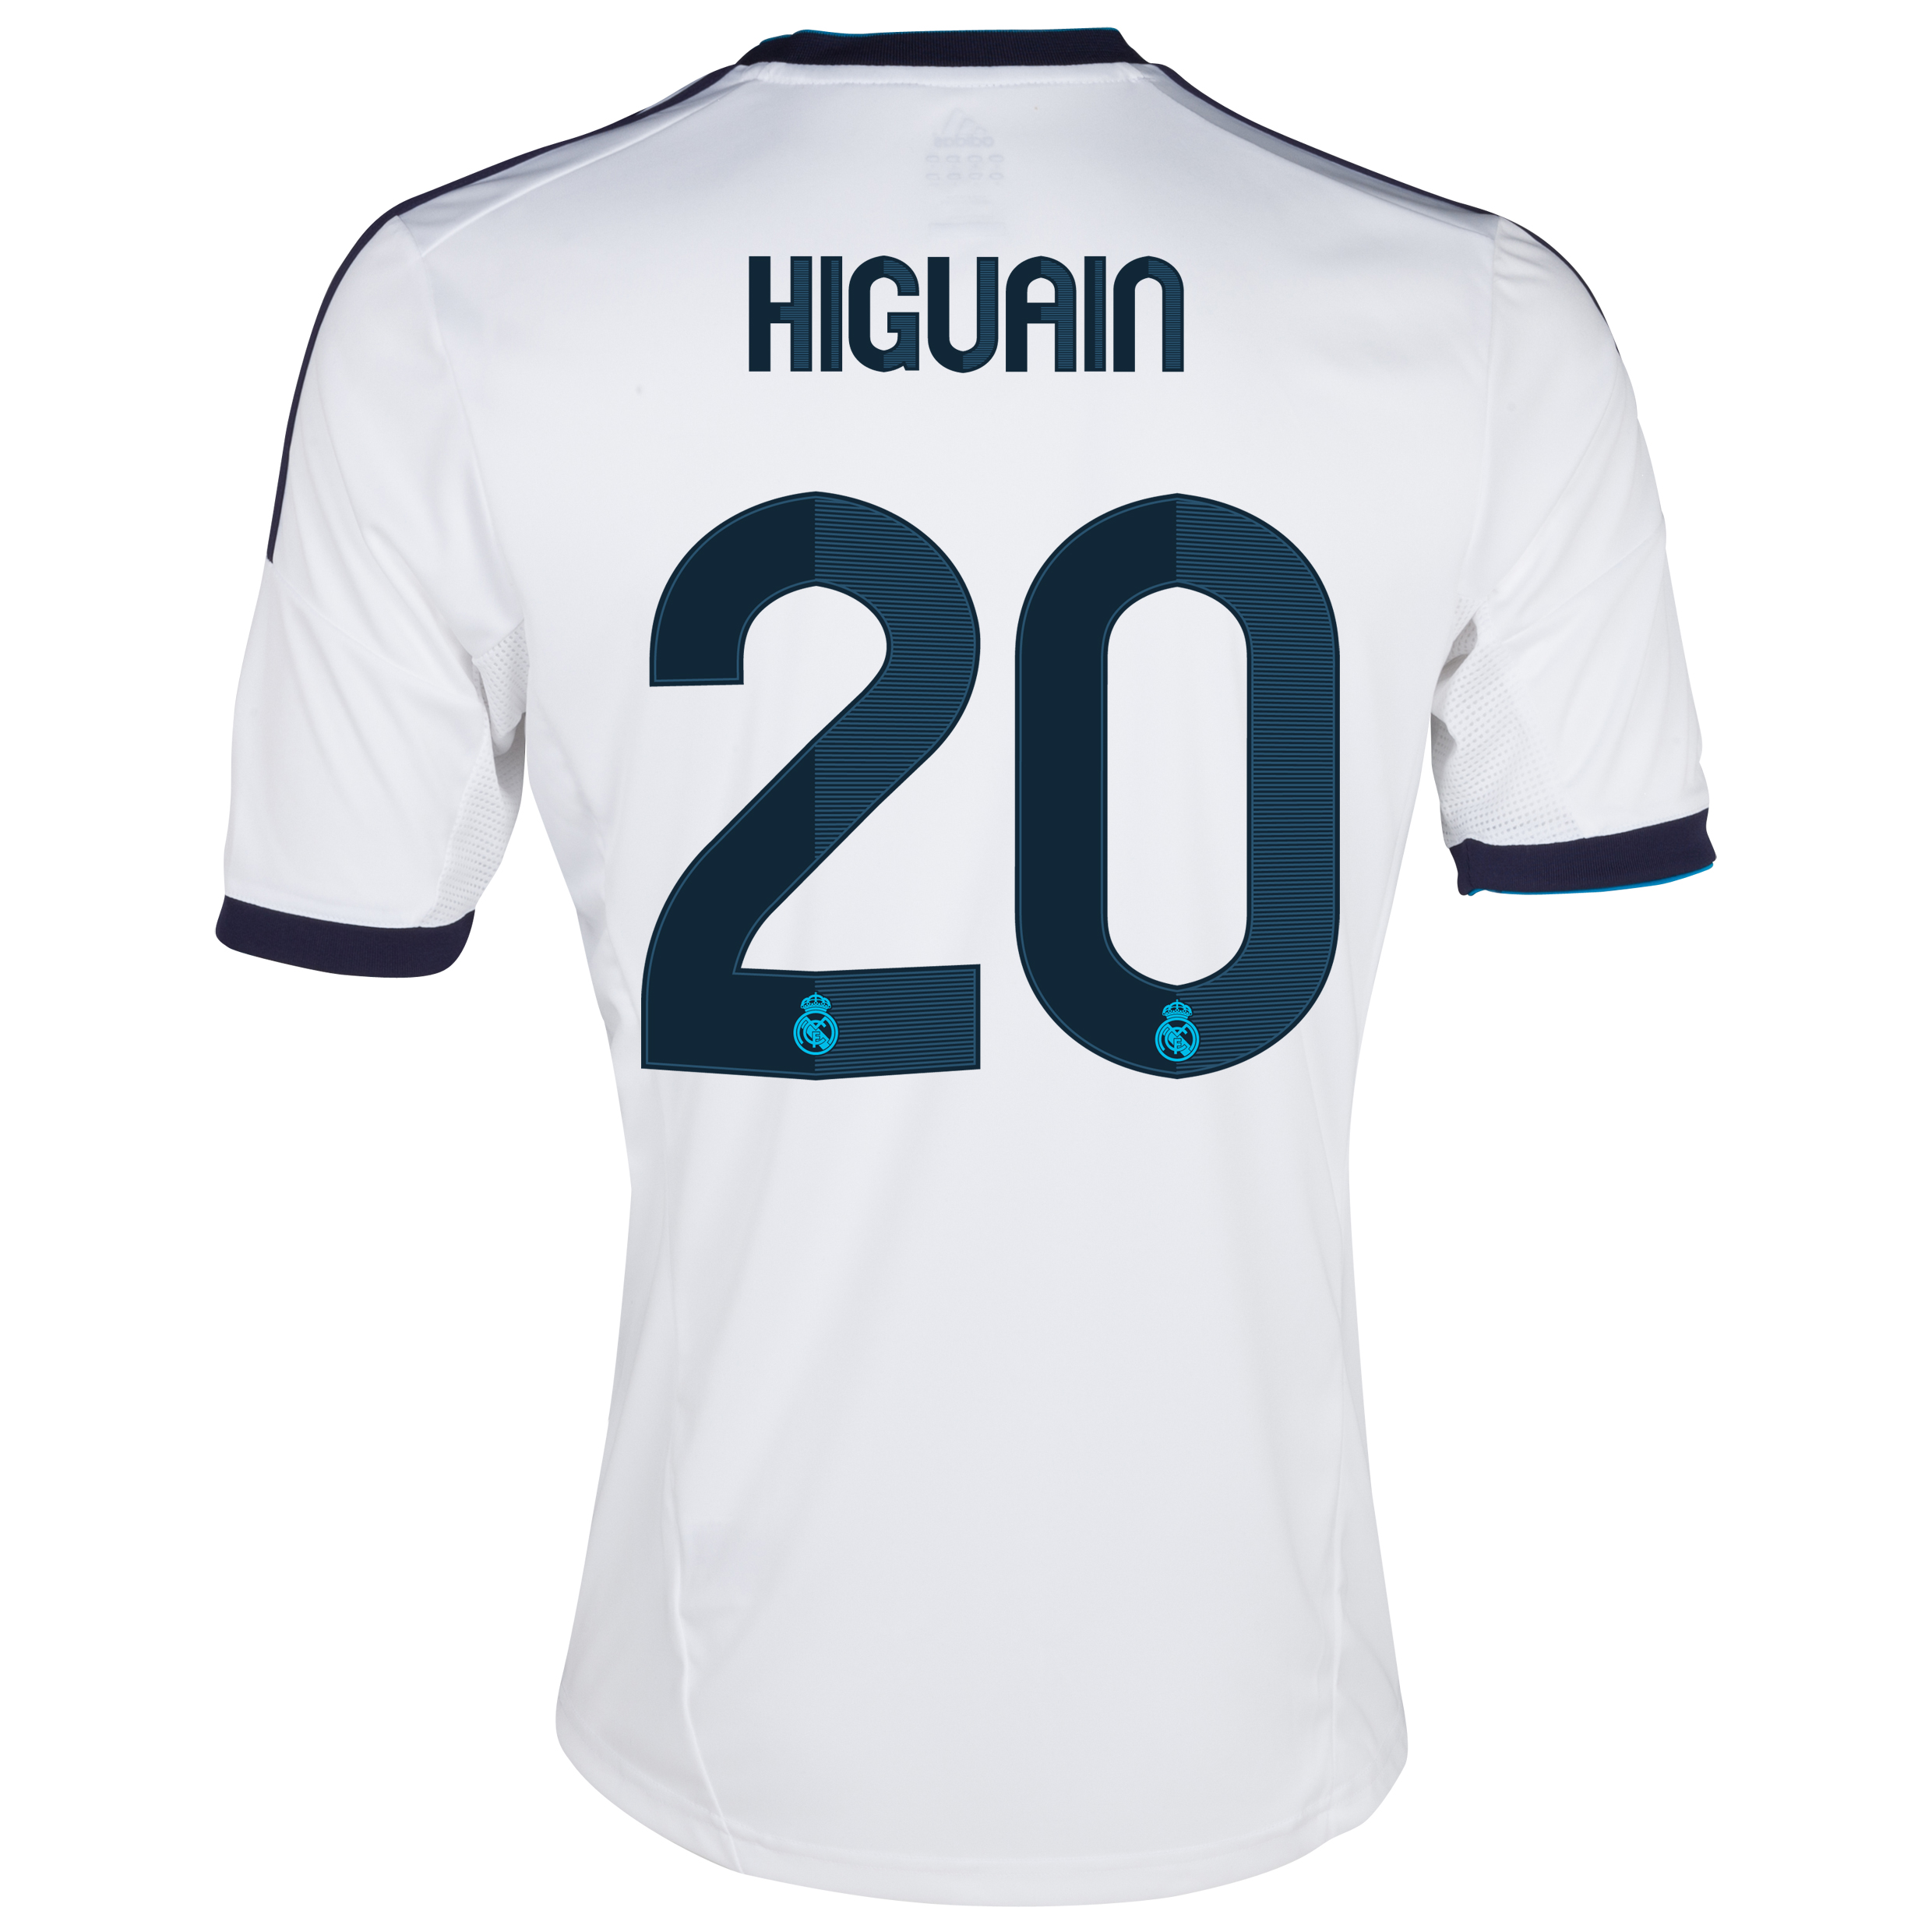 Real Madrid Home Shirt 2012/13 - Youths with Higuaín 20 printing